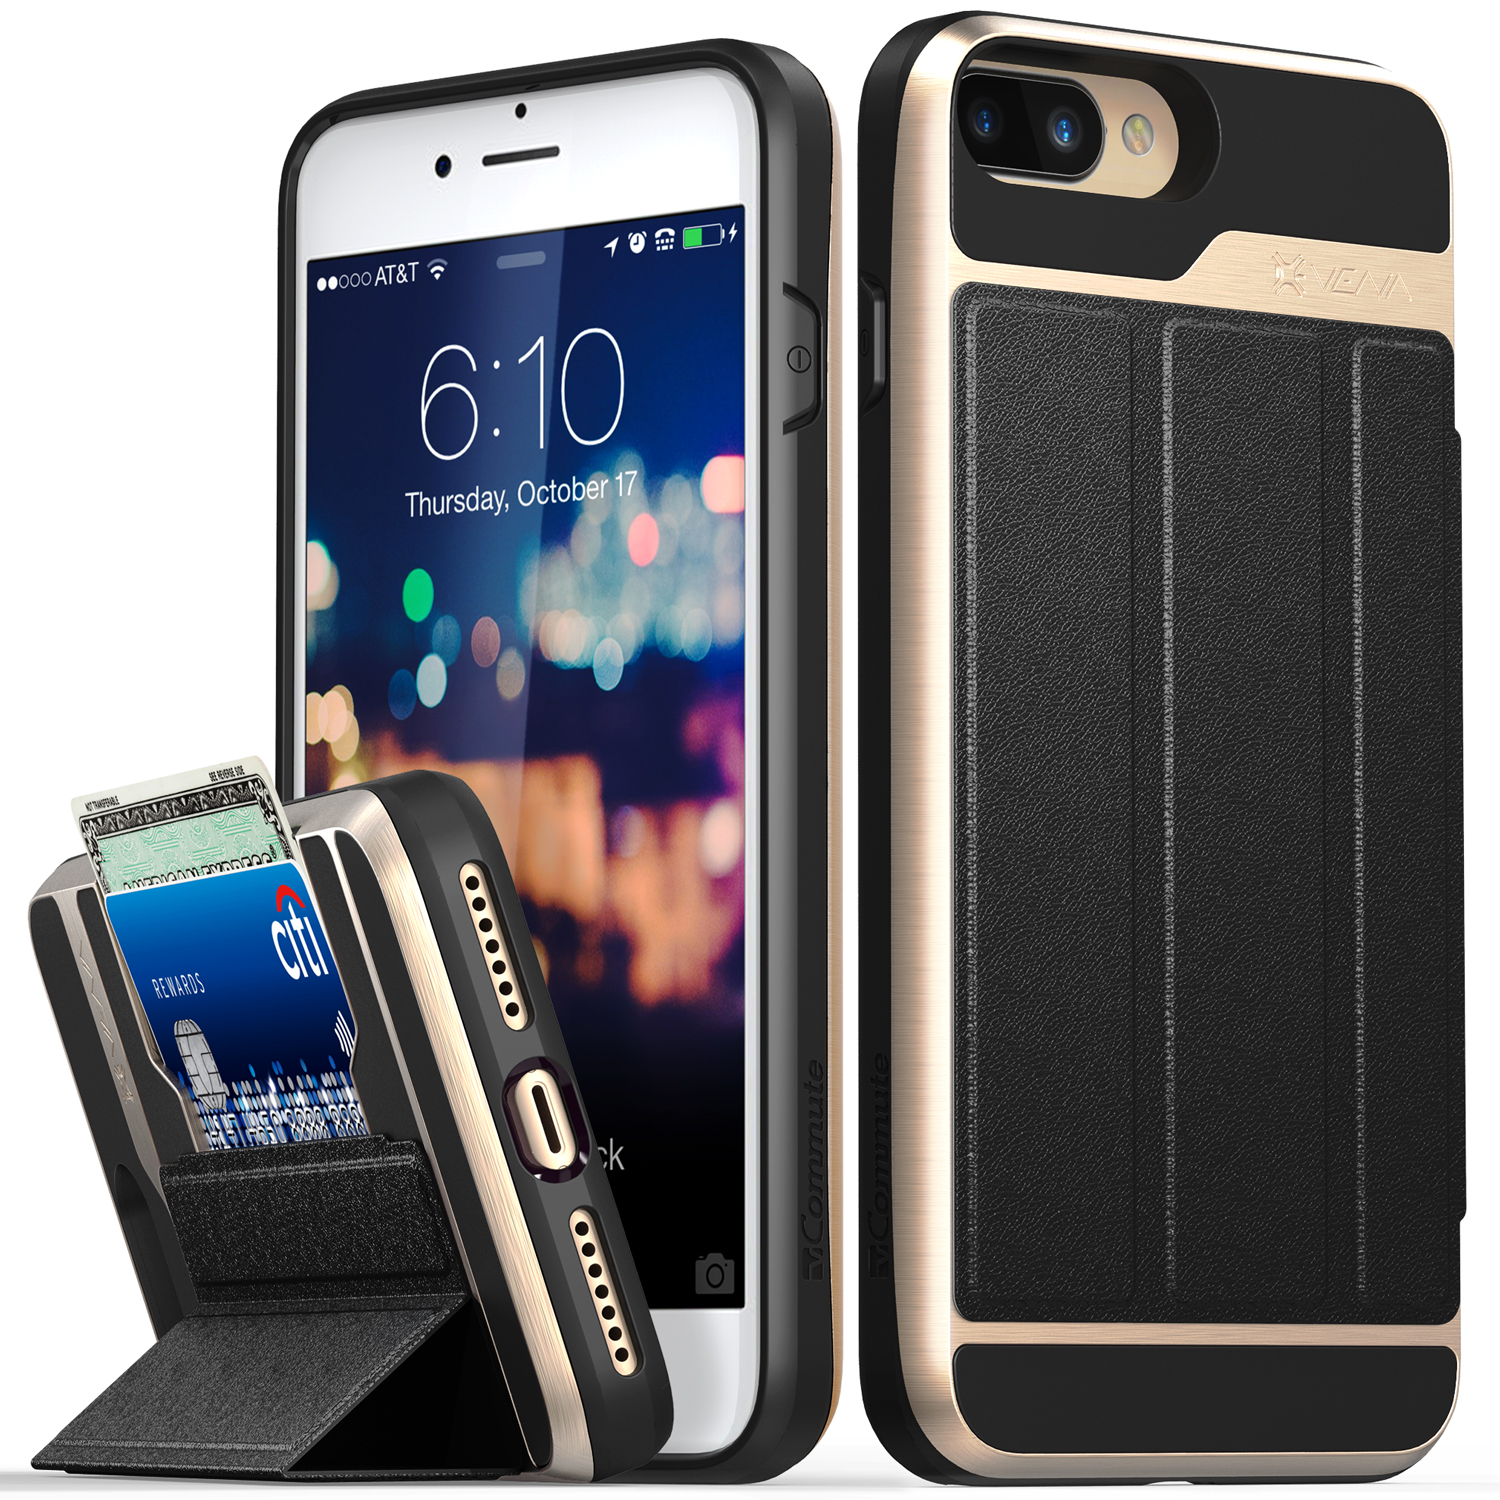 iPhone 8 Plus Wallet Case, iPhone 7 Plus Wallet Case, Vena [vCommute][Military Grade Drop Protection] Flip Leather Cover Card Slot w/ KickStand for Apple iPhone 8 Plus / 7 Plus (Gold / Black)